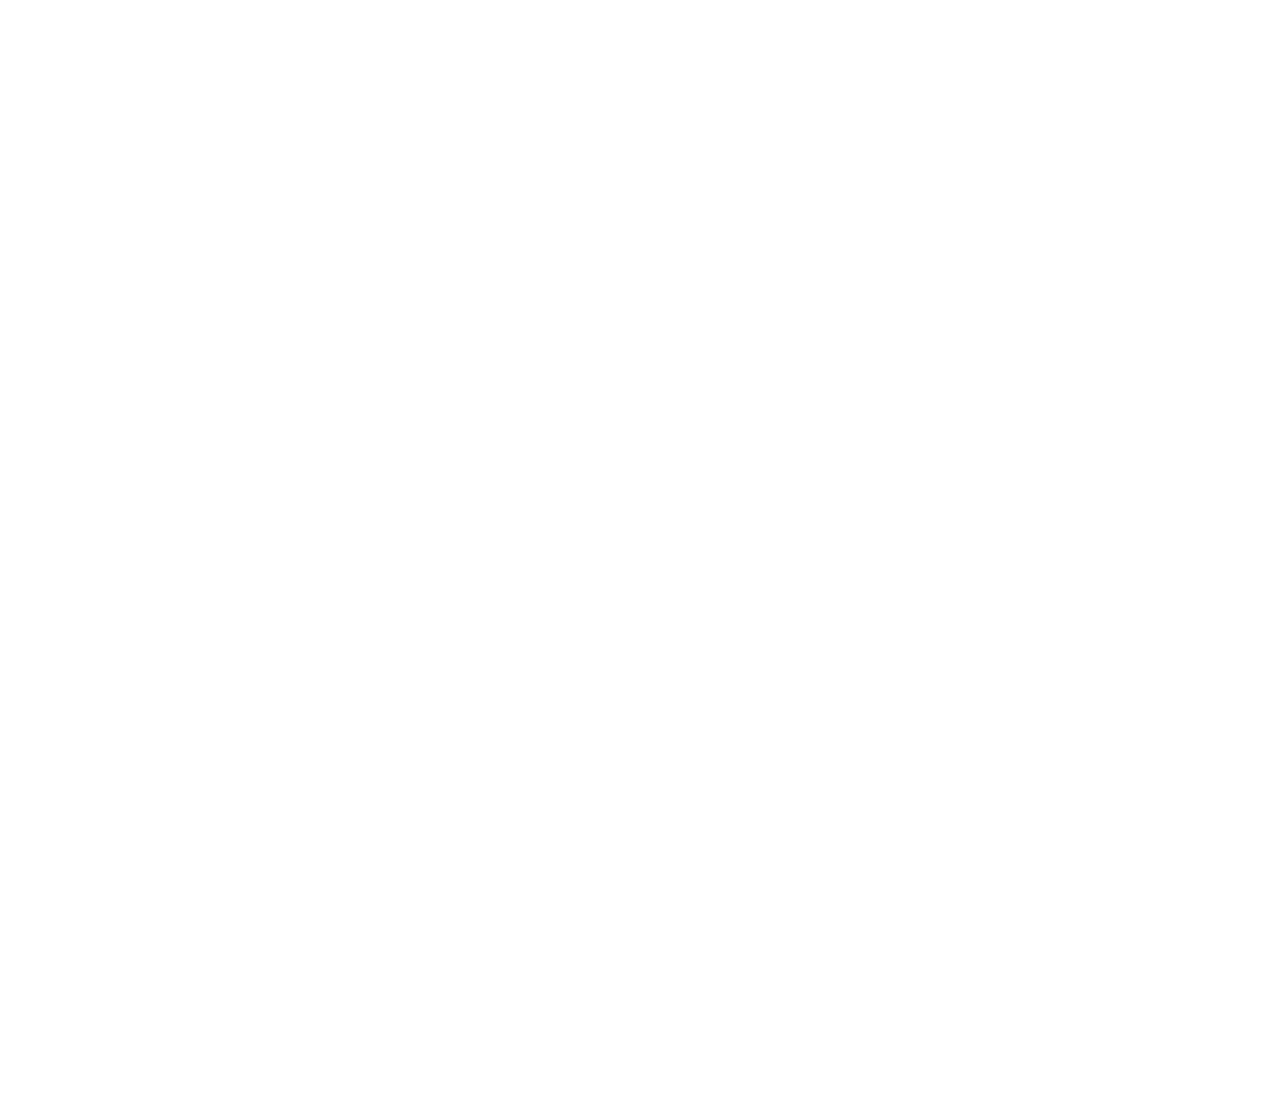 Blacks Of Greenock logo